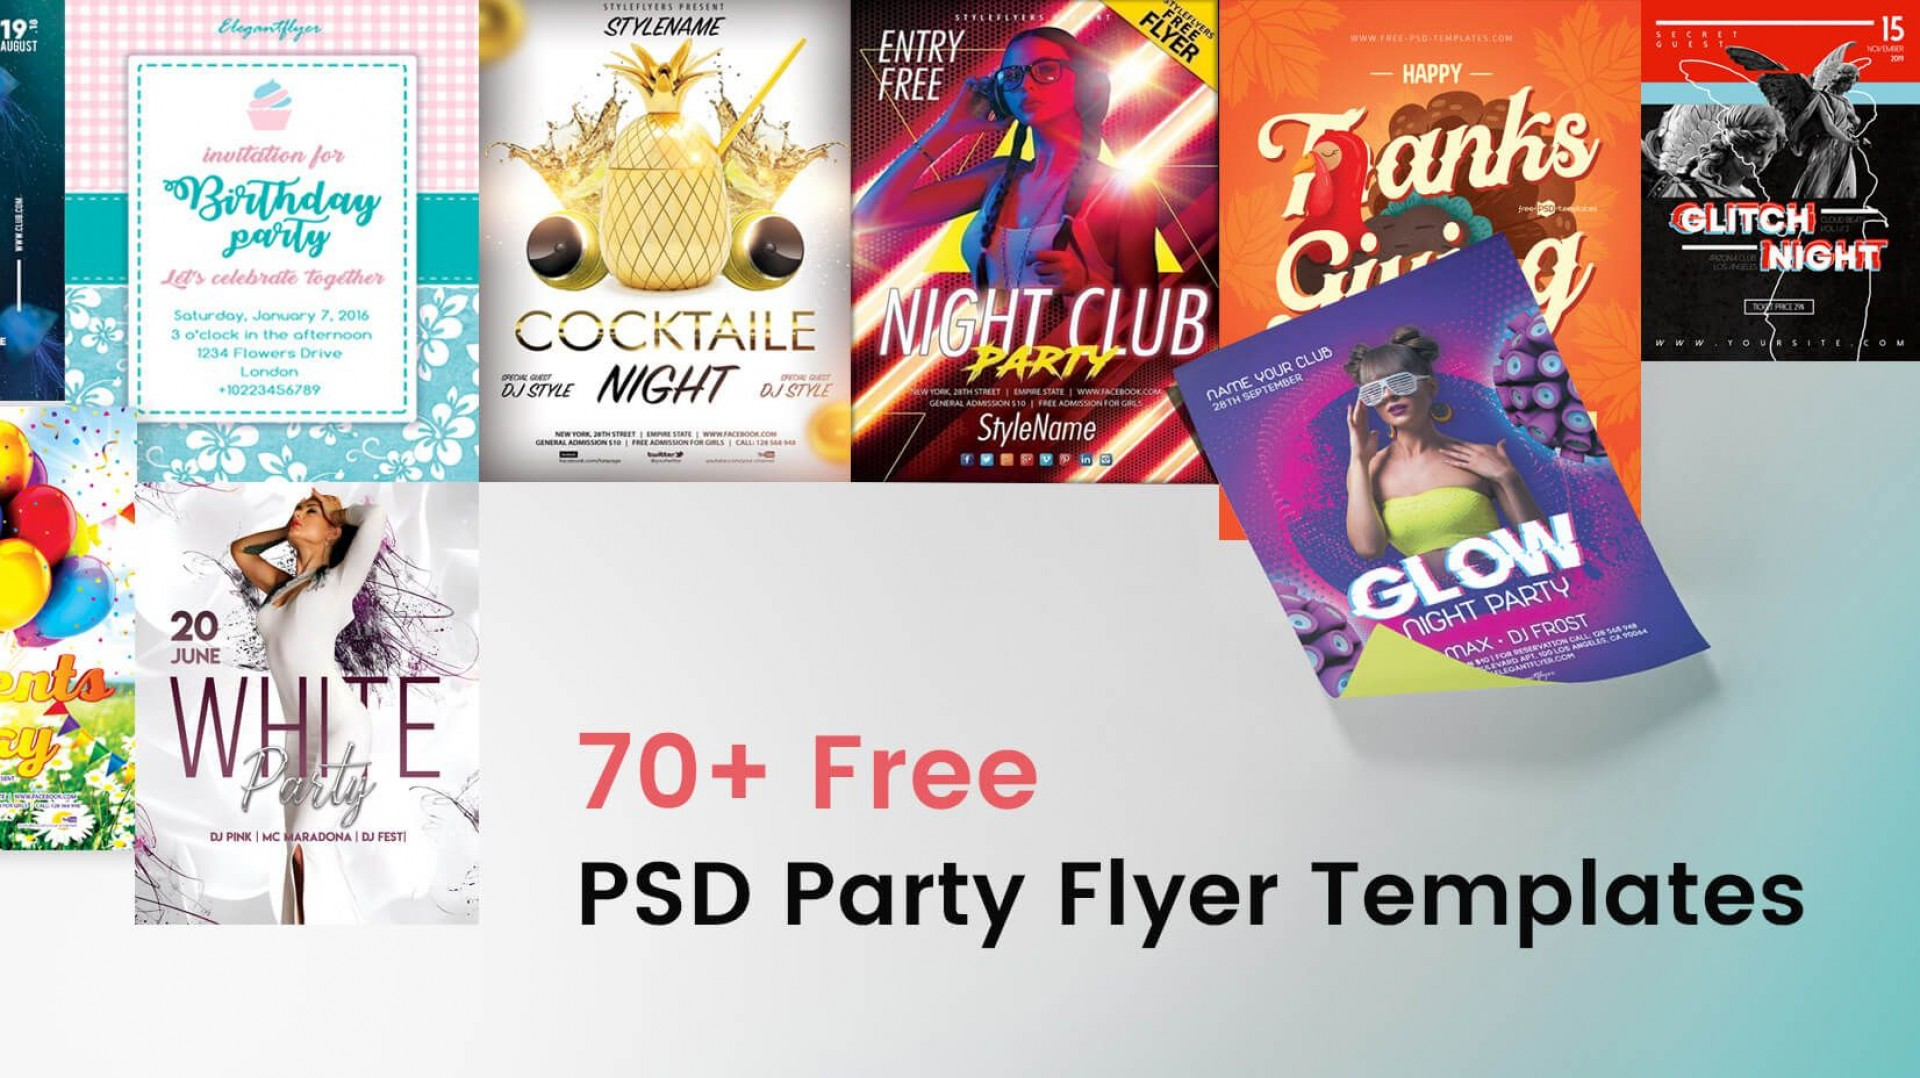 005 Remarkable Free Party Flyer Template For Photoshop High Def  Pool Psd Download1920